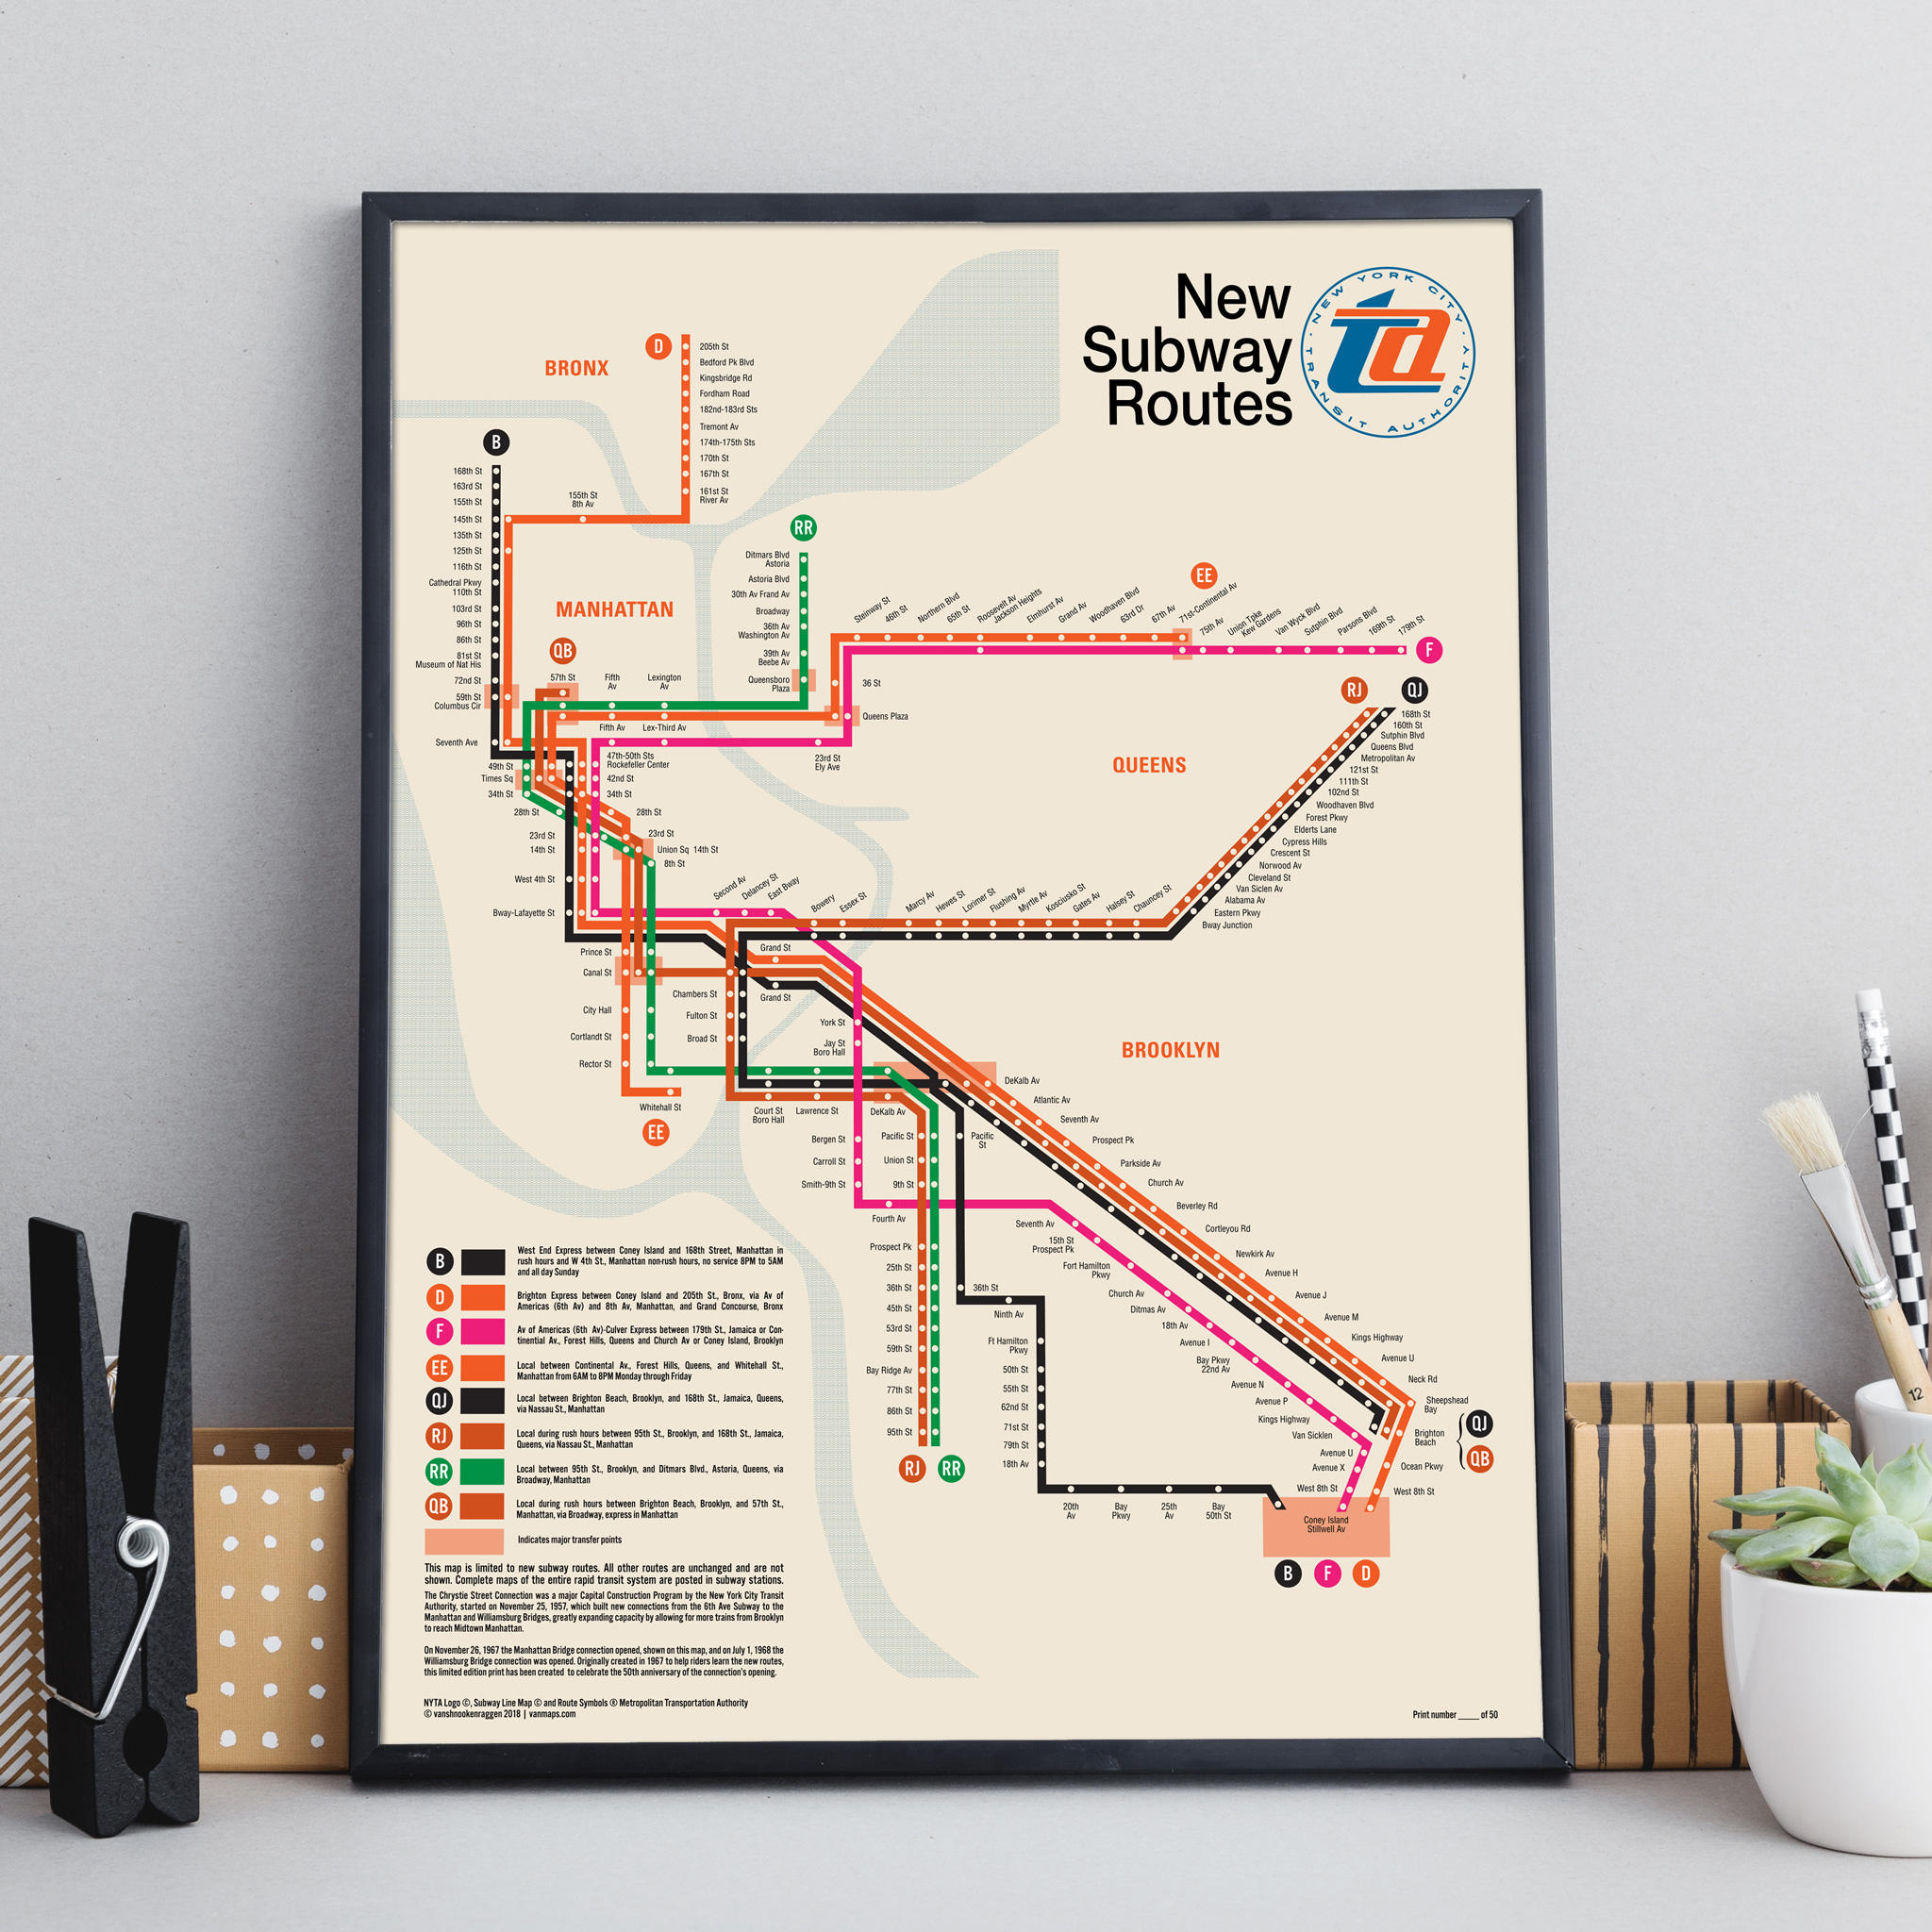 MTA New Routes: Chrystie Street Connection 50th Anniversary Poster San Francisco Street Map Poster on maryland map poster, florida map poster, united states map poster, california poster, chicago map poster, ohio map poster, toronto map poster, paris map poster, germany map poster, los angeles poster, brooklyn map poster, venice map poster, indianapolis map poster, mississippi map poster, hong kong map poster, austin map poster, new england map poster, seattle map poster, columbus map poster, north carolina map poster,